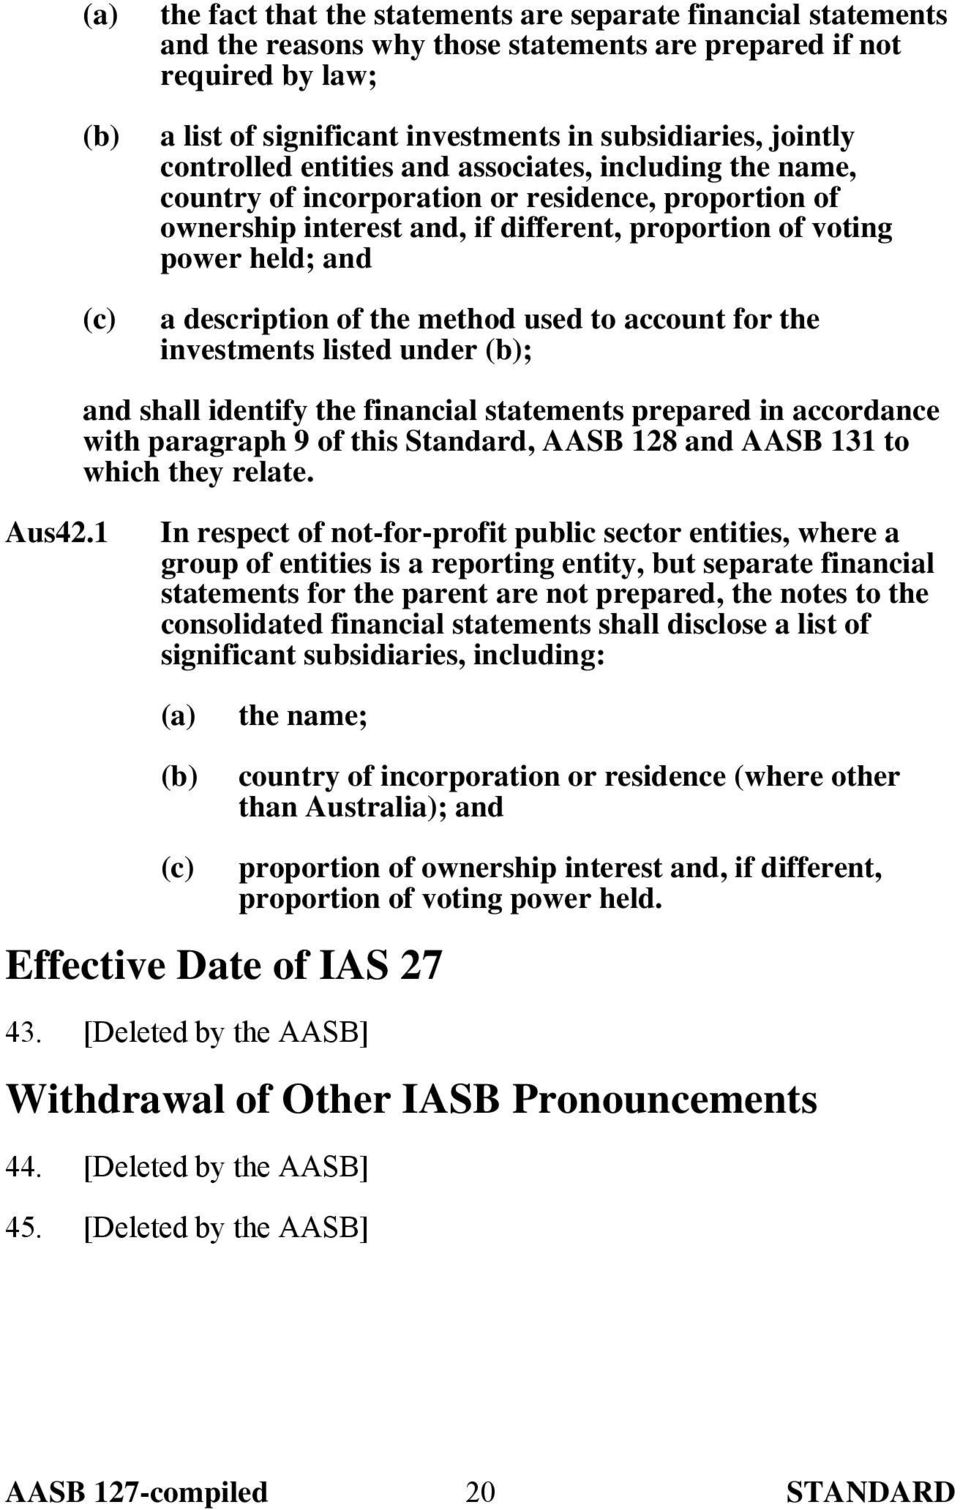 description of the method used to account for the investments listed under (b); and shall identify the financial statements prepared in accordance with paragraph 9 of this Standard, AASB 128 and AASB